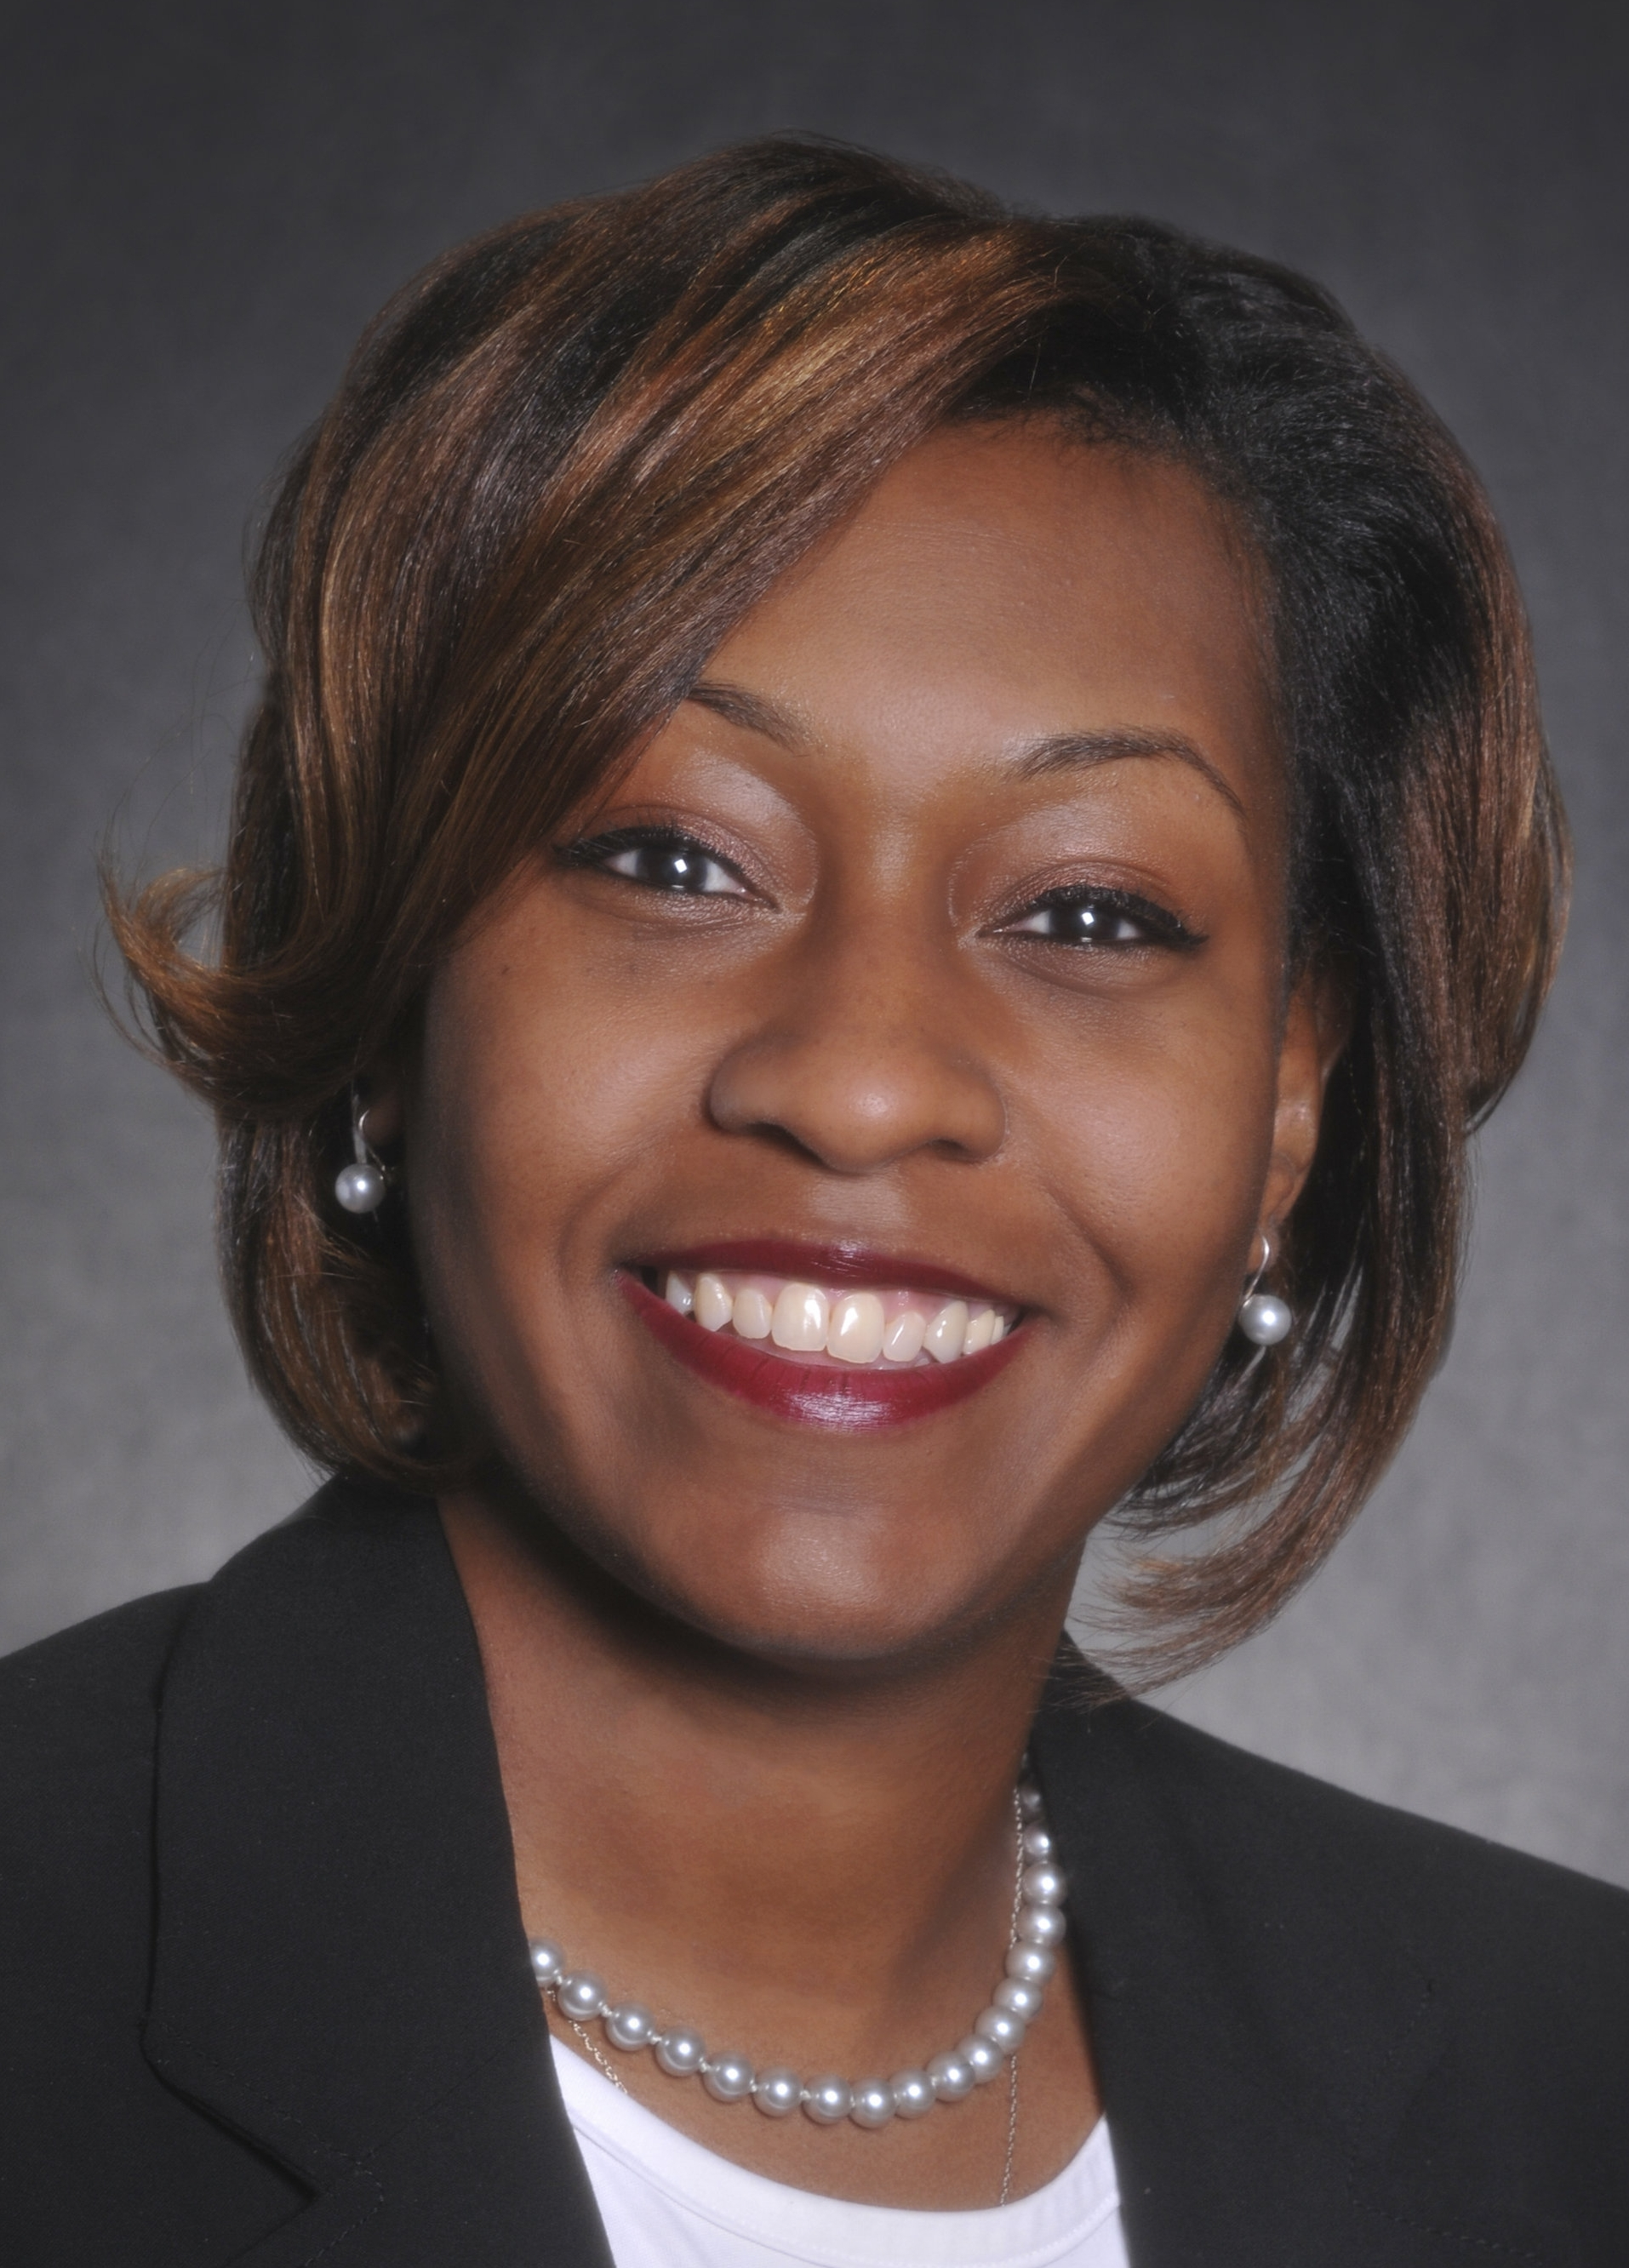 Monique Odom, Interim Director of Parks, Nashville's Metro Board of Parks and Recreation